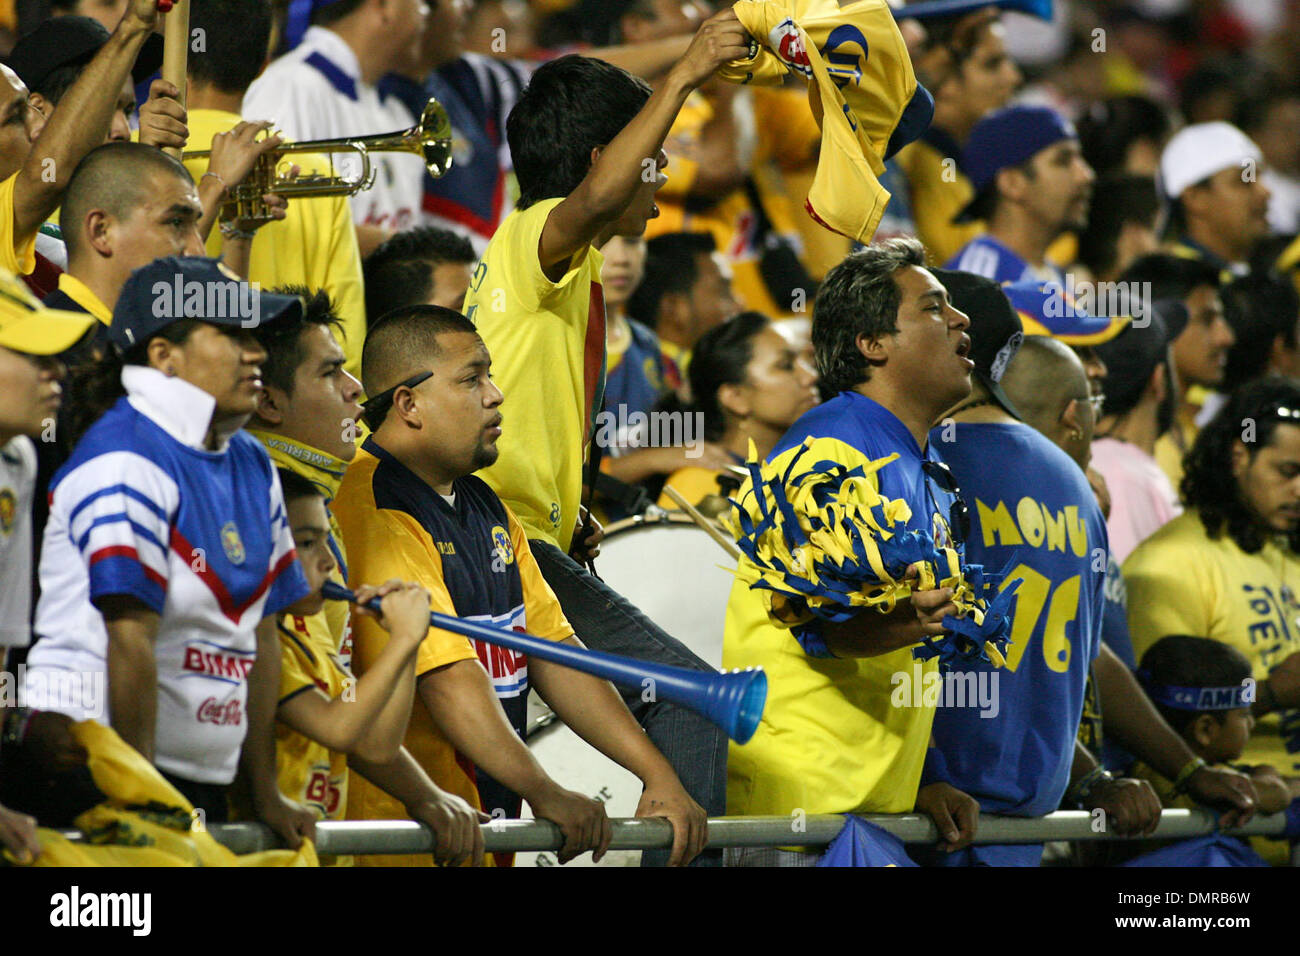 16 September 2009: Fans support their respected teams. Chivas Guadalajara defeated Club America 2-1 in the 205th Clasico match between the two teams. Arrowhead Stadium, Kansas City, MO, USA. (Credit Image: © Tyson Hofsommer/Southcreek Global/ZUMApress.com) - Stock Image